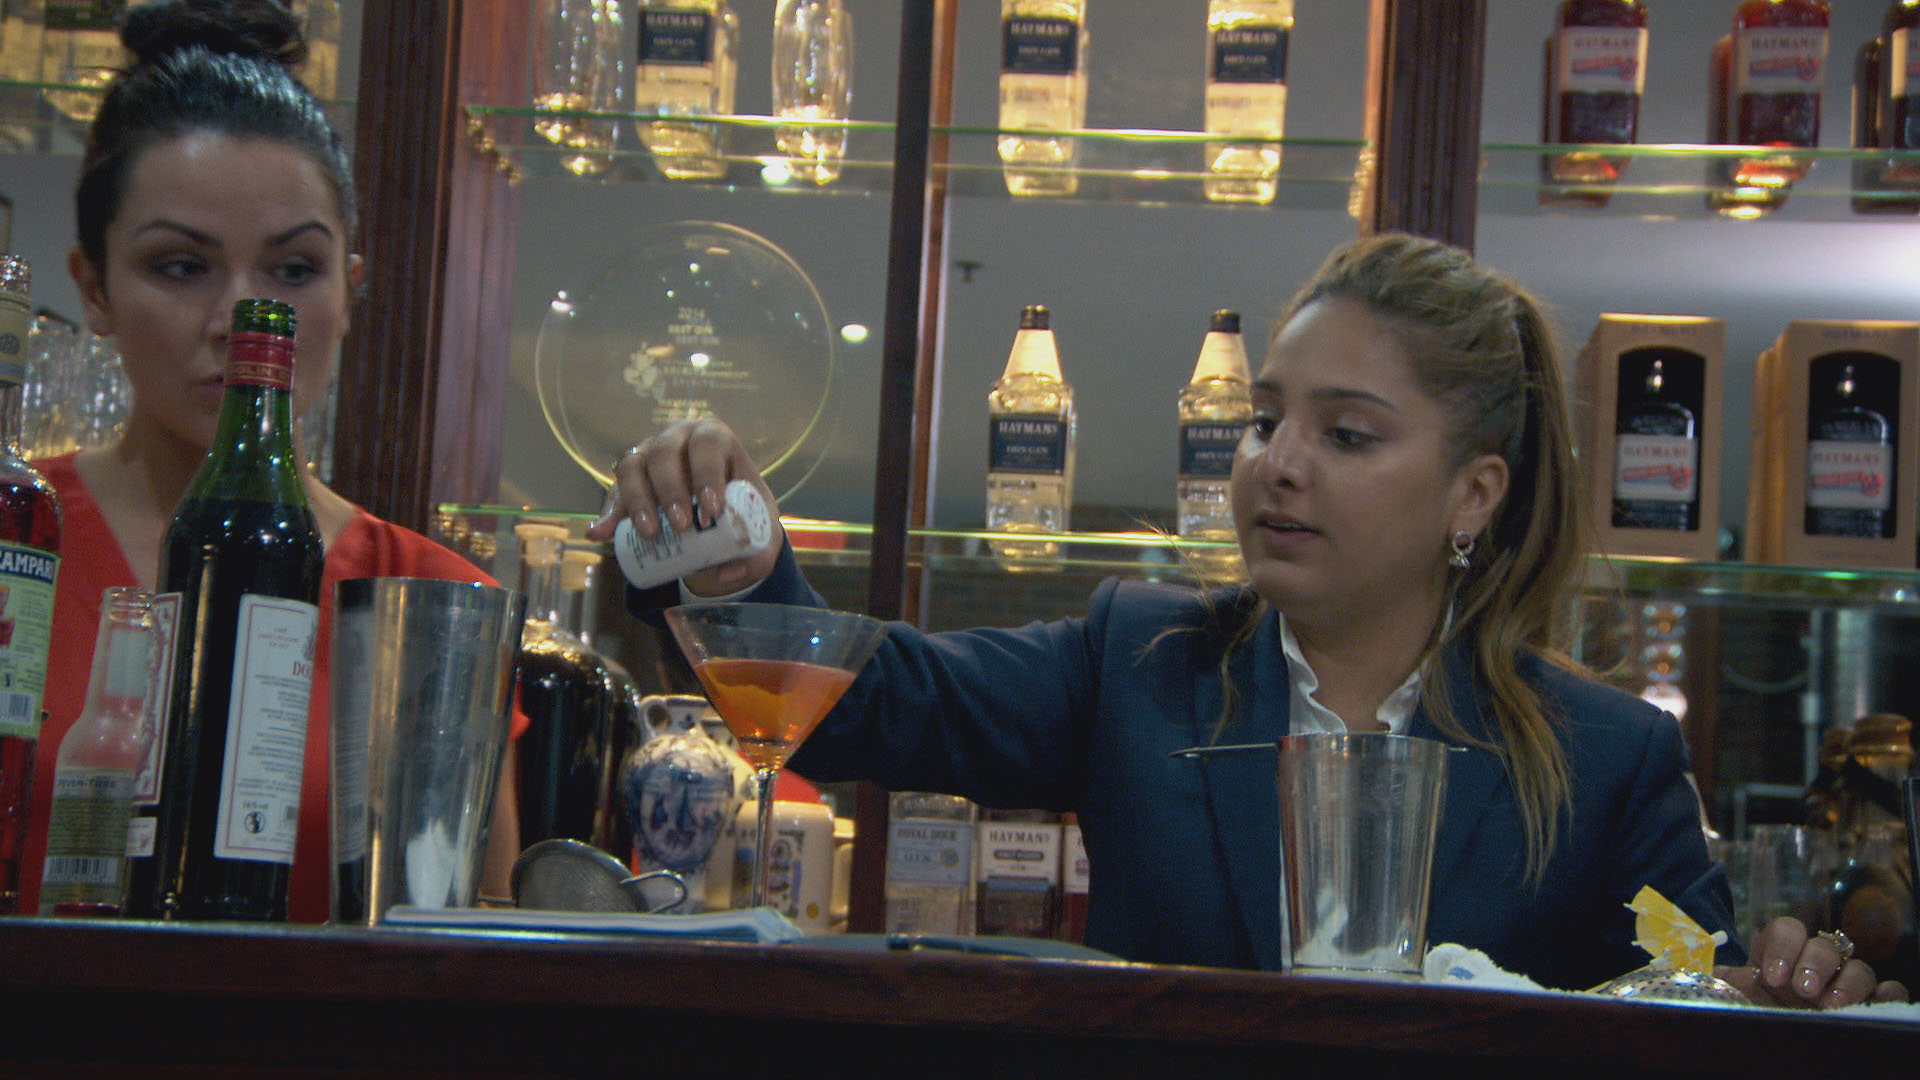 The Apprentice candidates drank too much gin on a task and it turned out as you'd expect